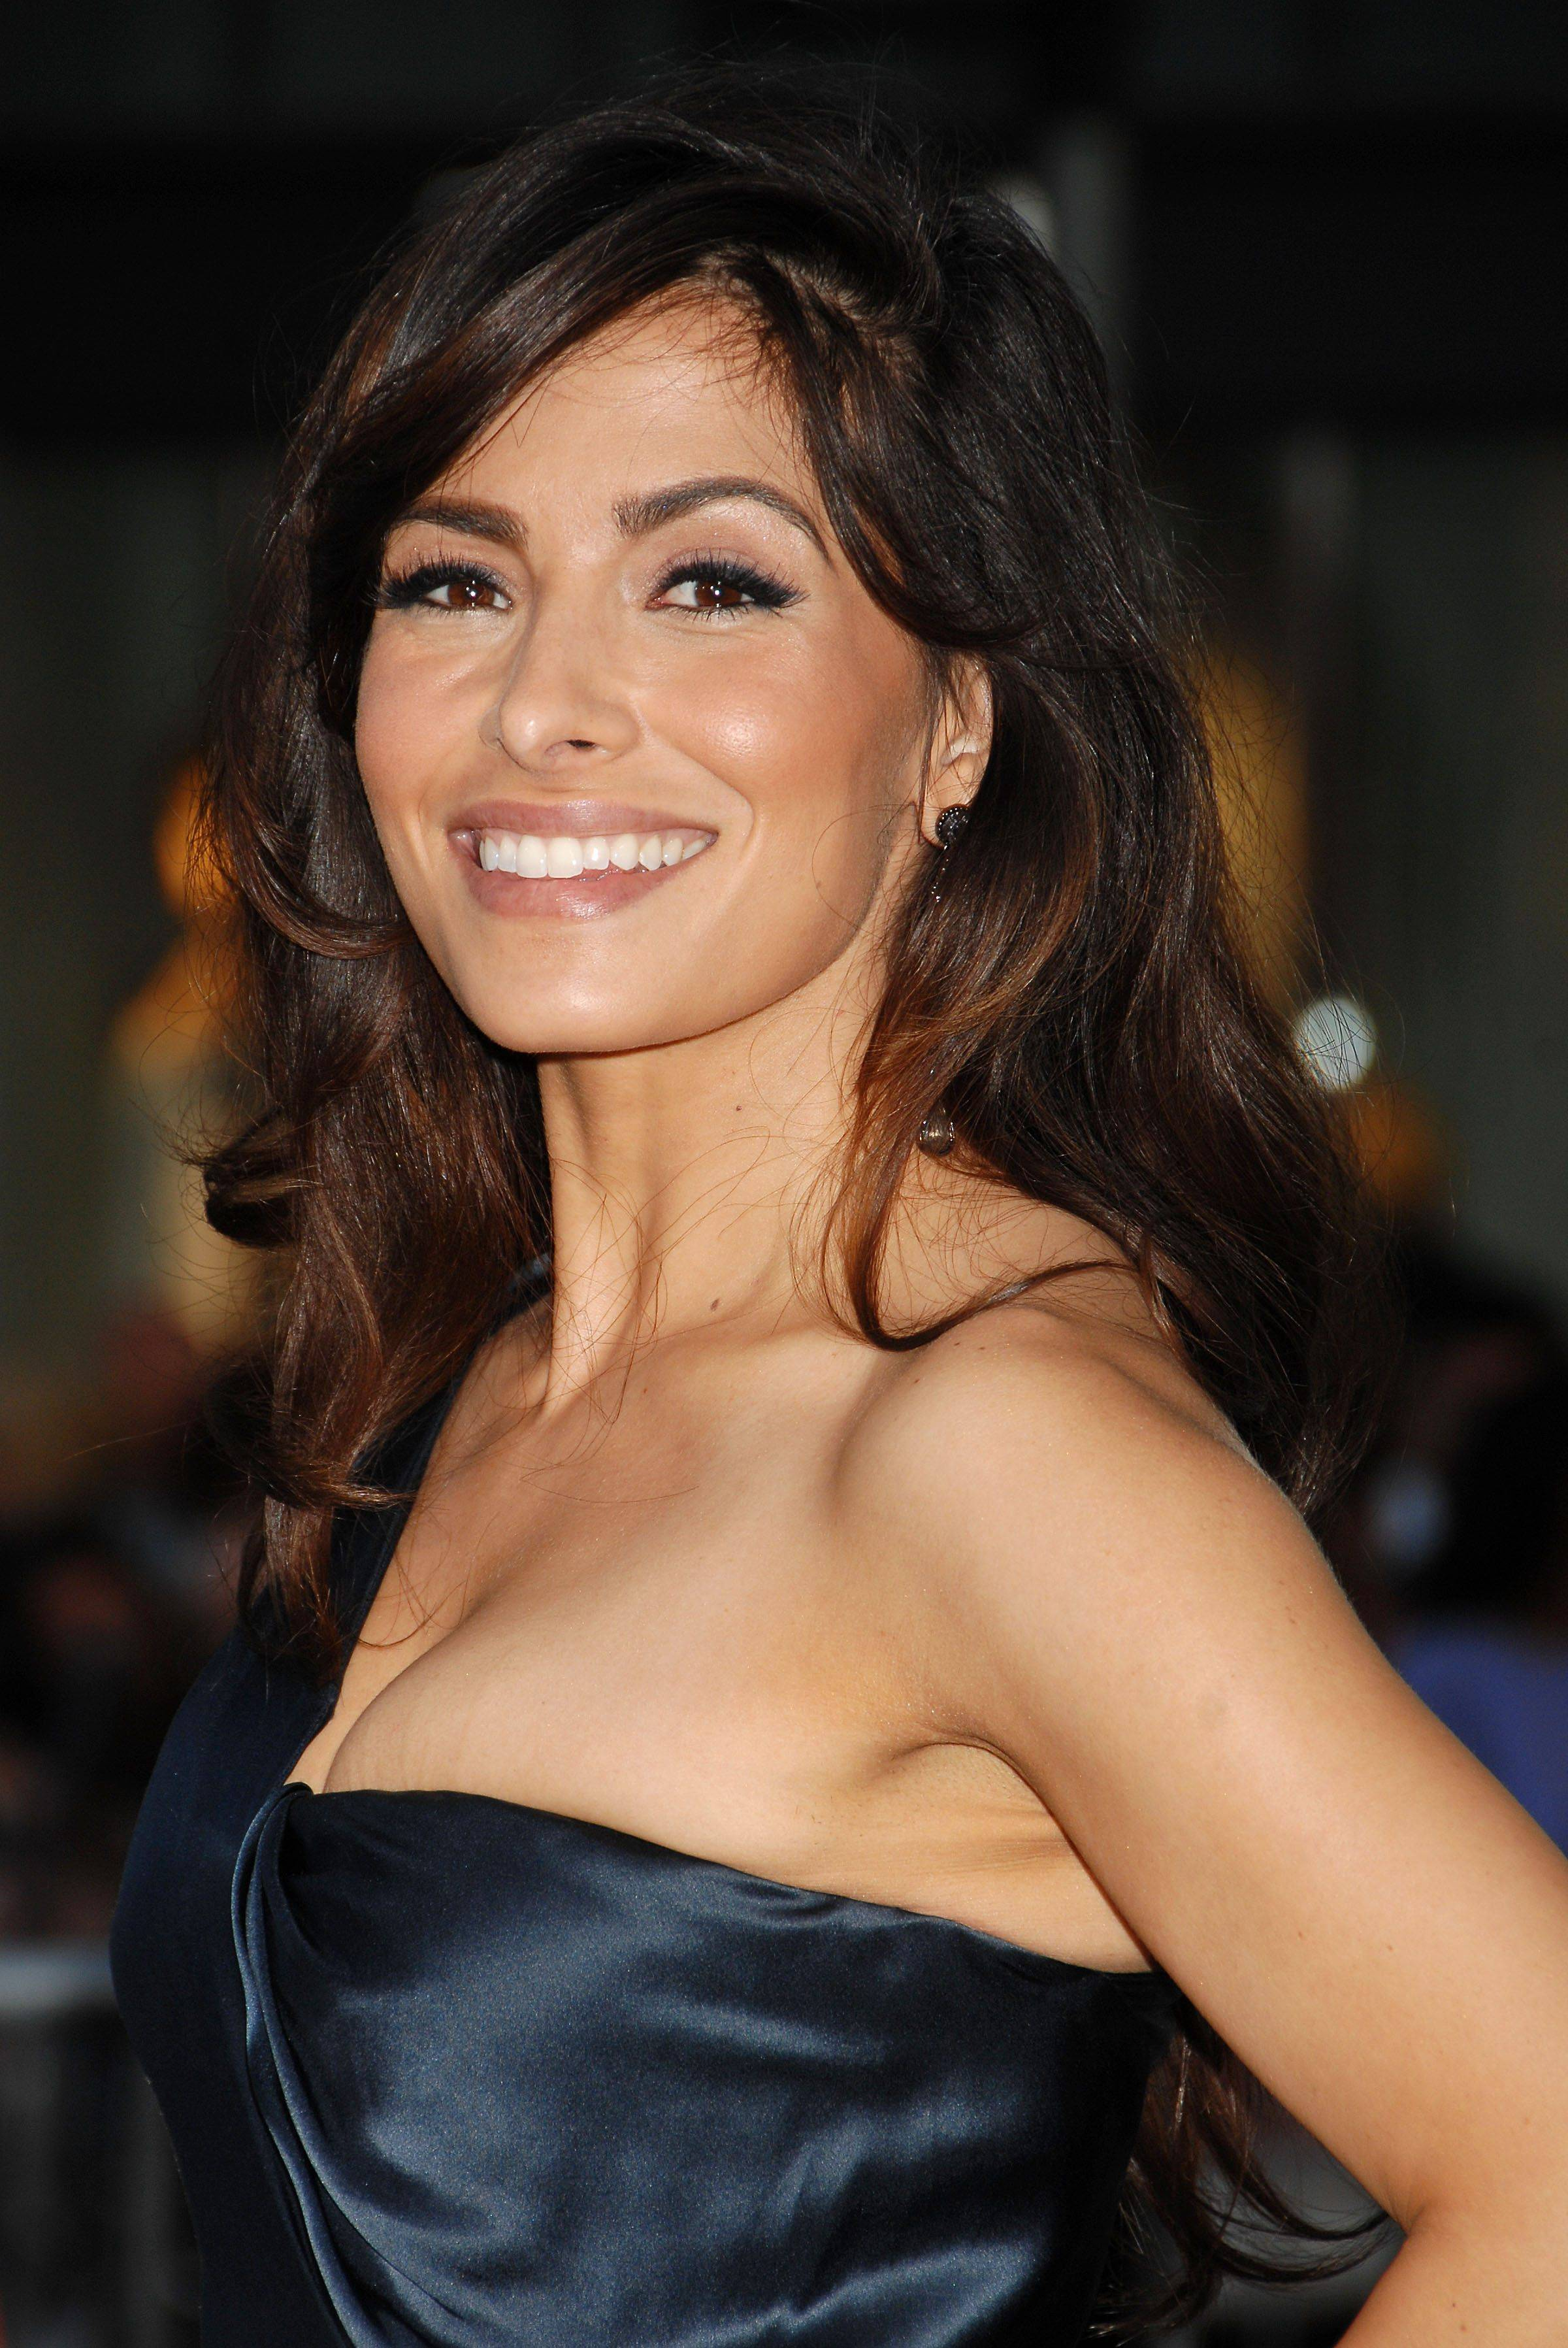 Sarah Shahi Hd Wallpapers Free Download In High Quality